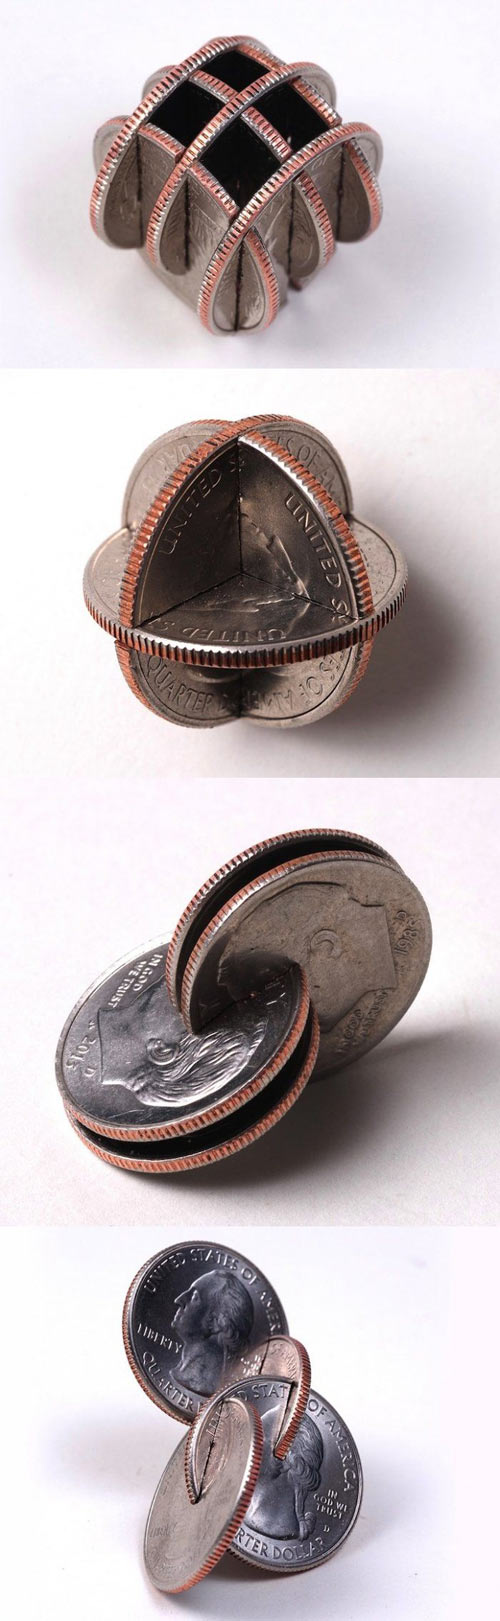 Art with coins...